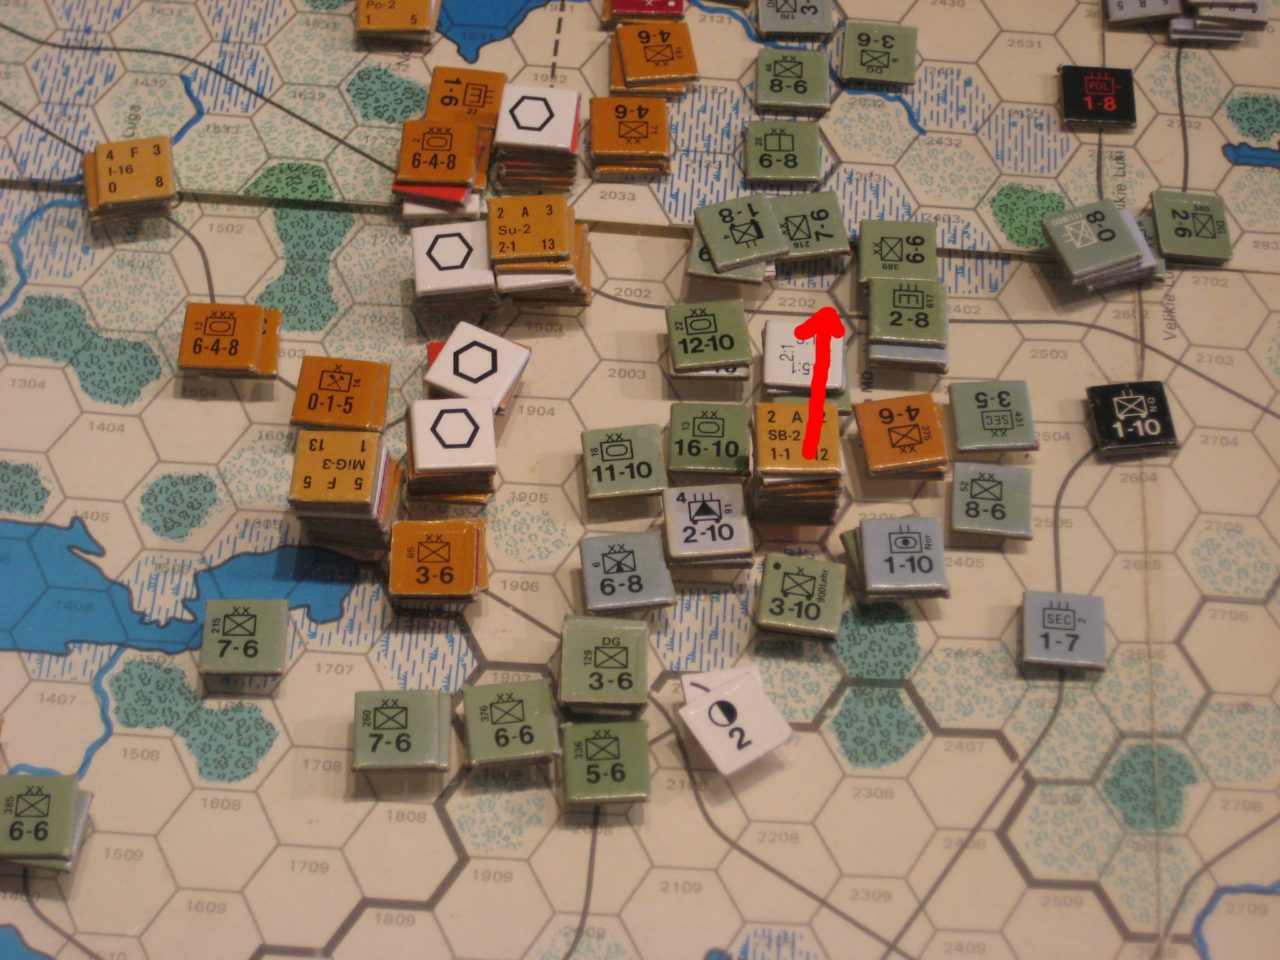 '42 May II: Soviet breakout attempt south of Leningrad